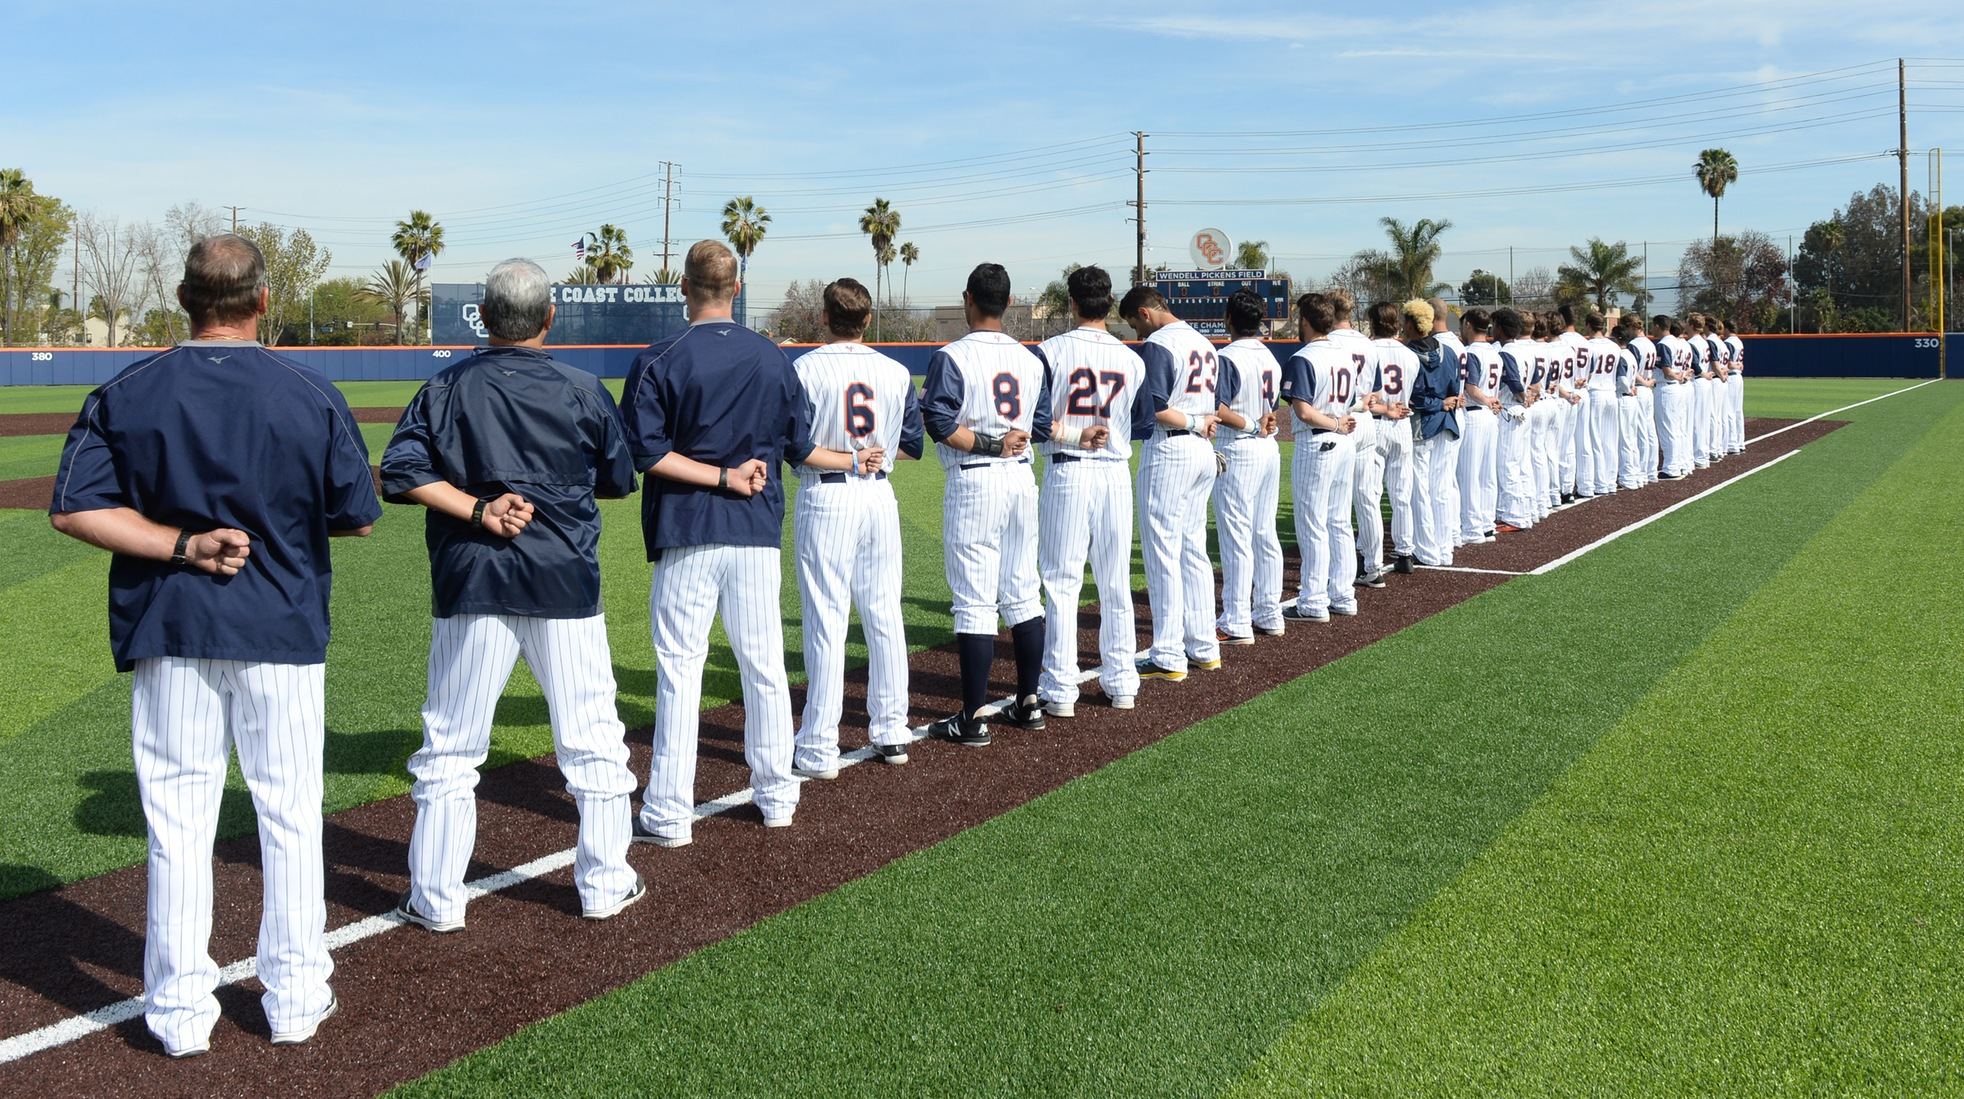 Pirates open Southern California Regional playoffs against Cuesta